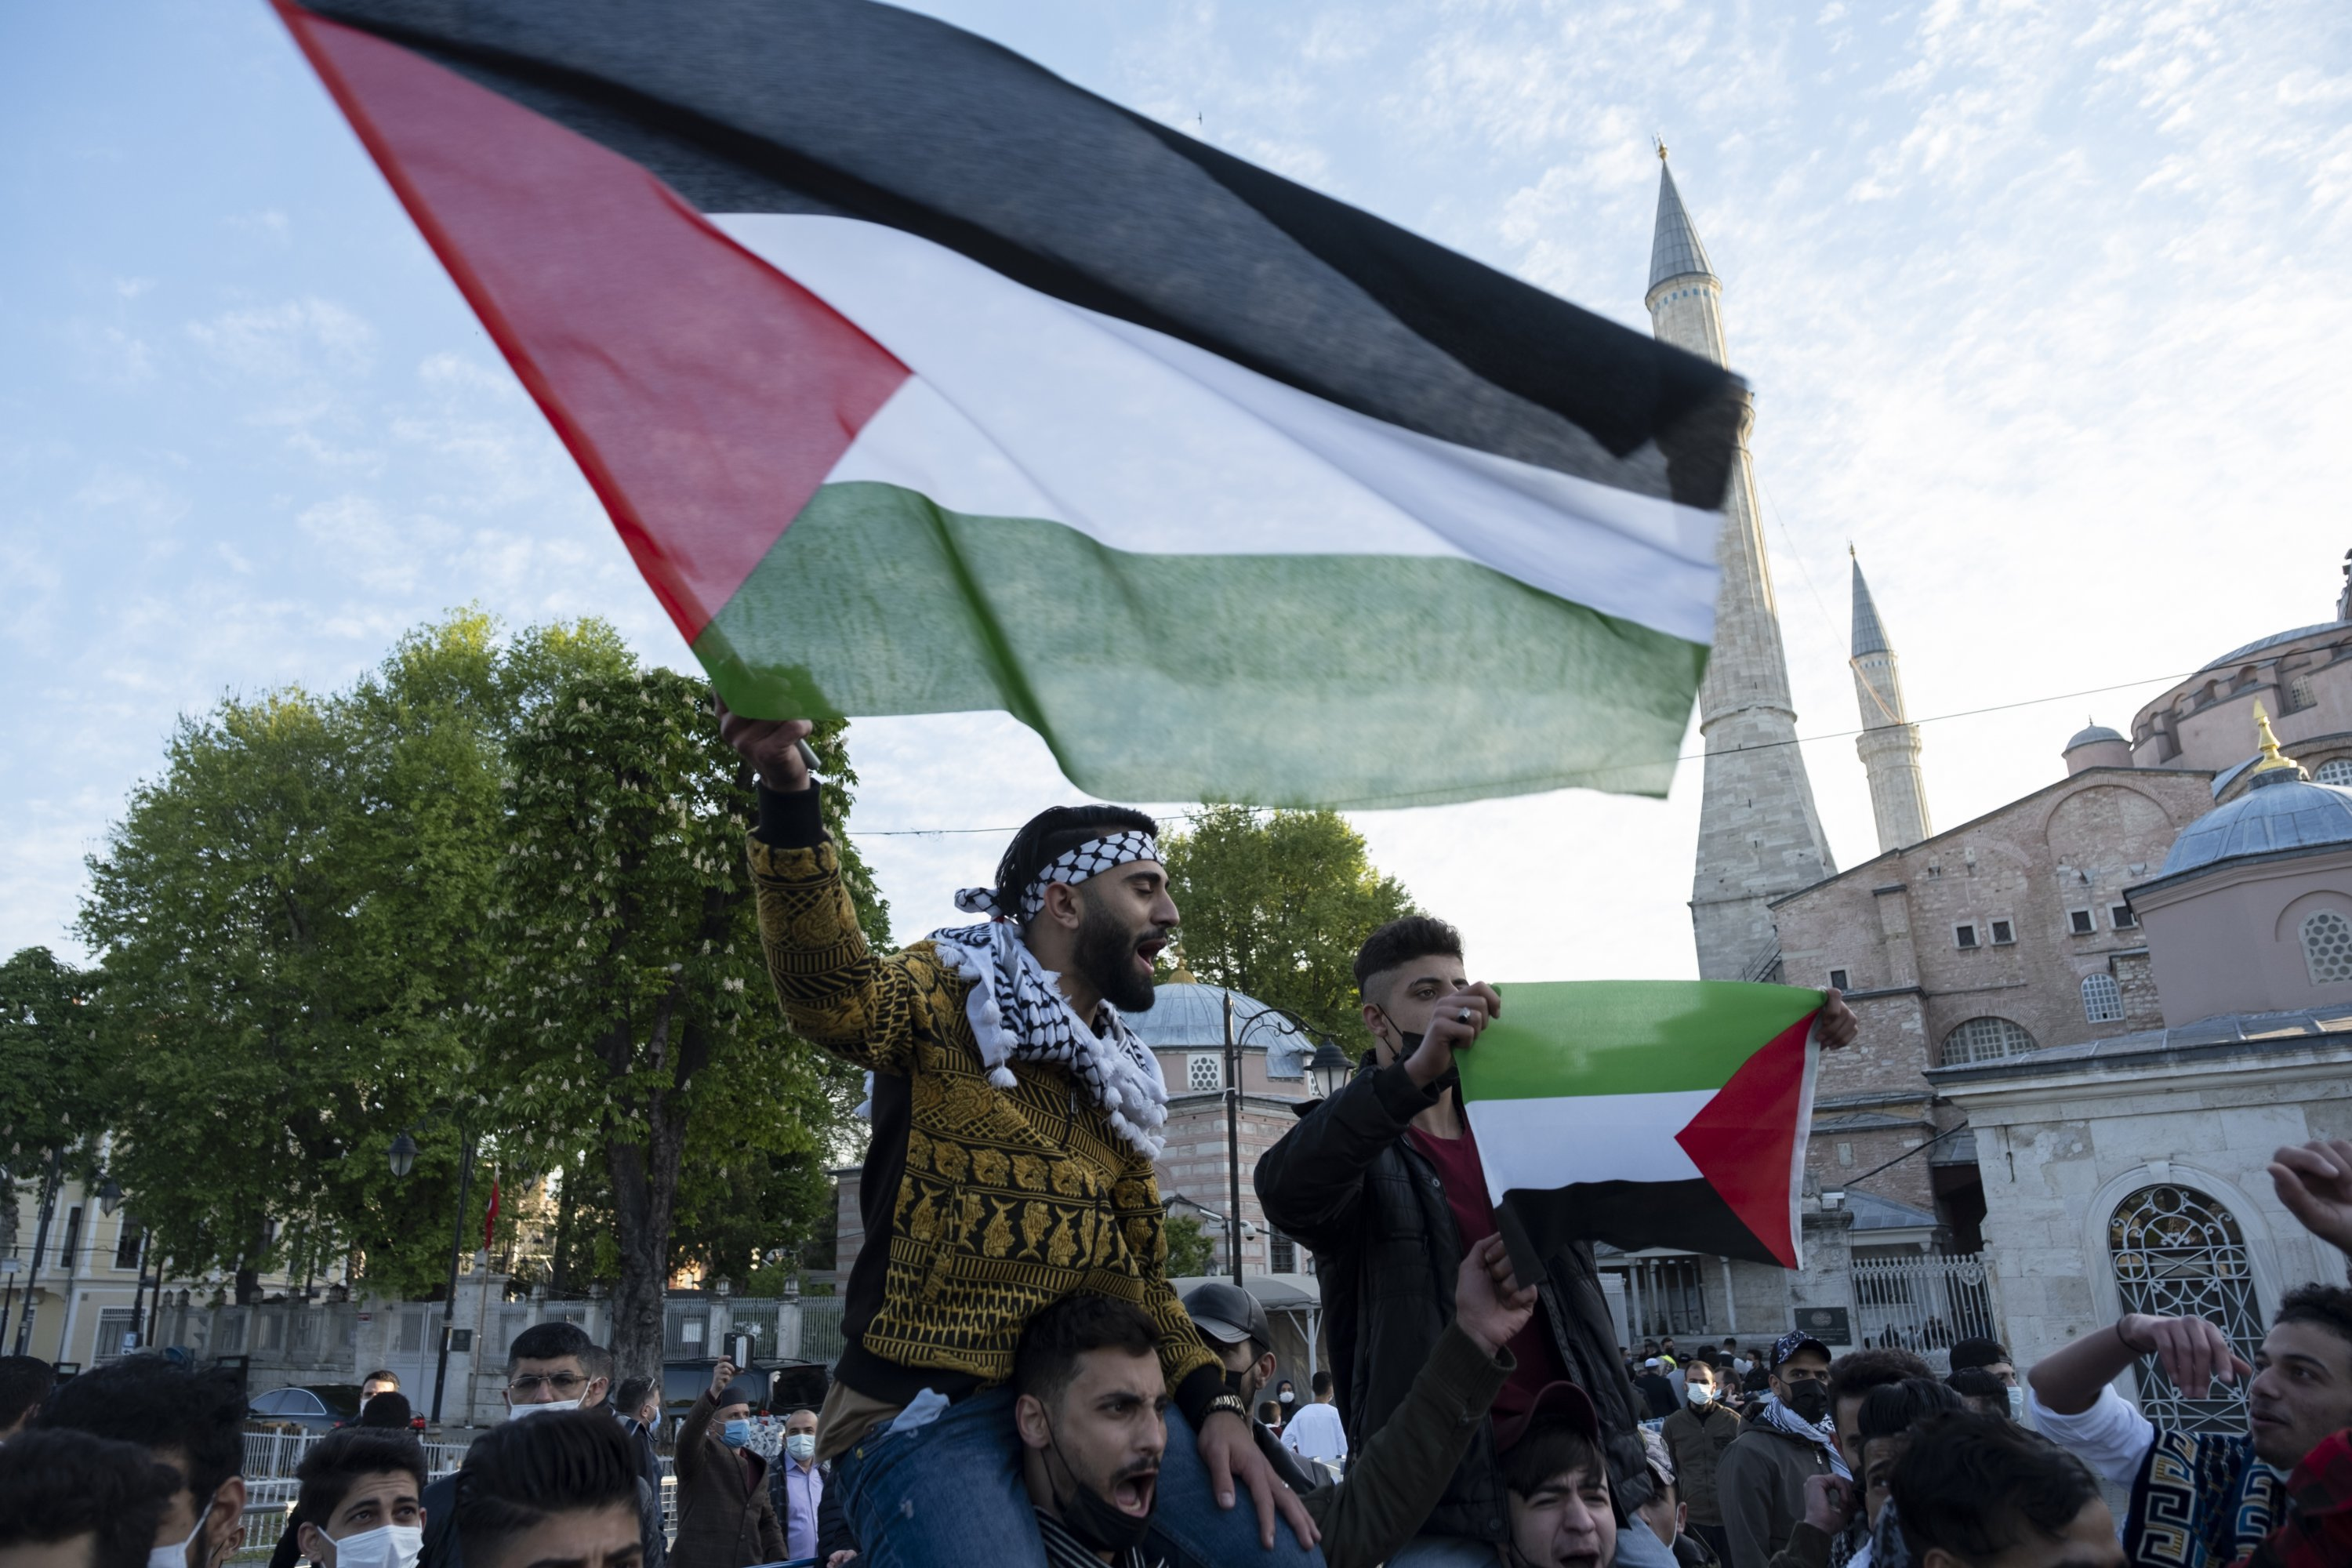 Protesters, some holding Palestinian flags chant anti-Israel slogans, during an impromptu protest in support of the Palestinians in the latest round of violence, following prayers on the first day Eid al-Fitr, which marks the end of the holy month of Ramadan, outside the Hagia Sophia Grand Mosque in the historic Sultanahmet district of Istanbul, Turkey, May 13, 2021. (AP Photo)